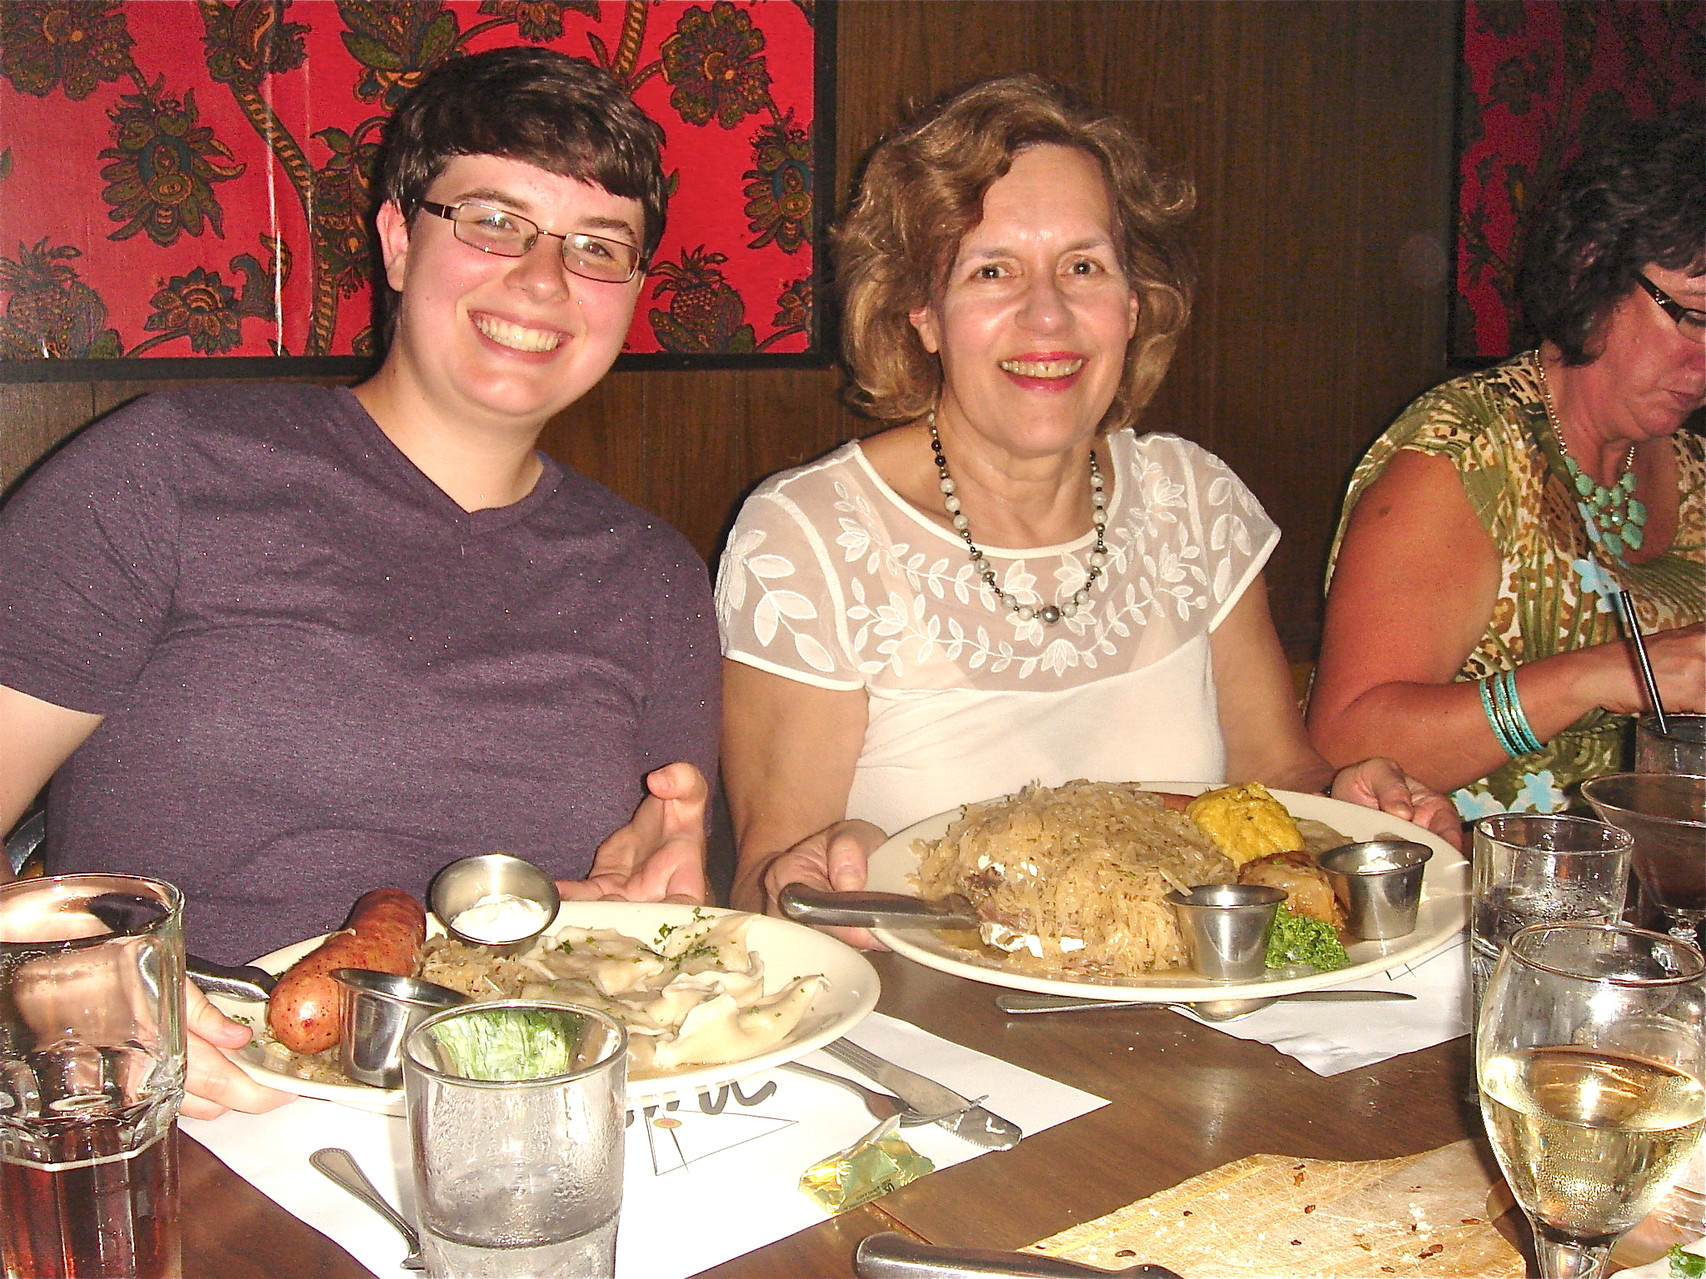 Emilea & Lorraine show of their LARGE portions.